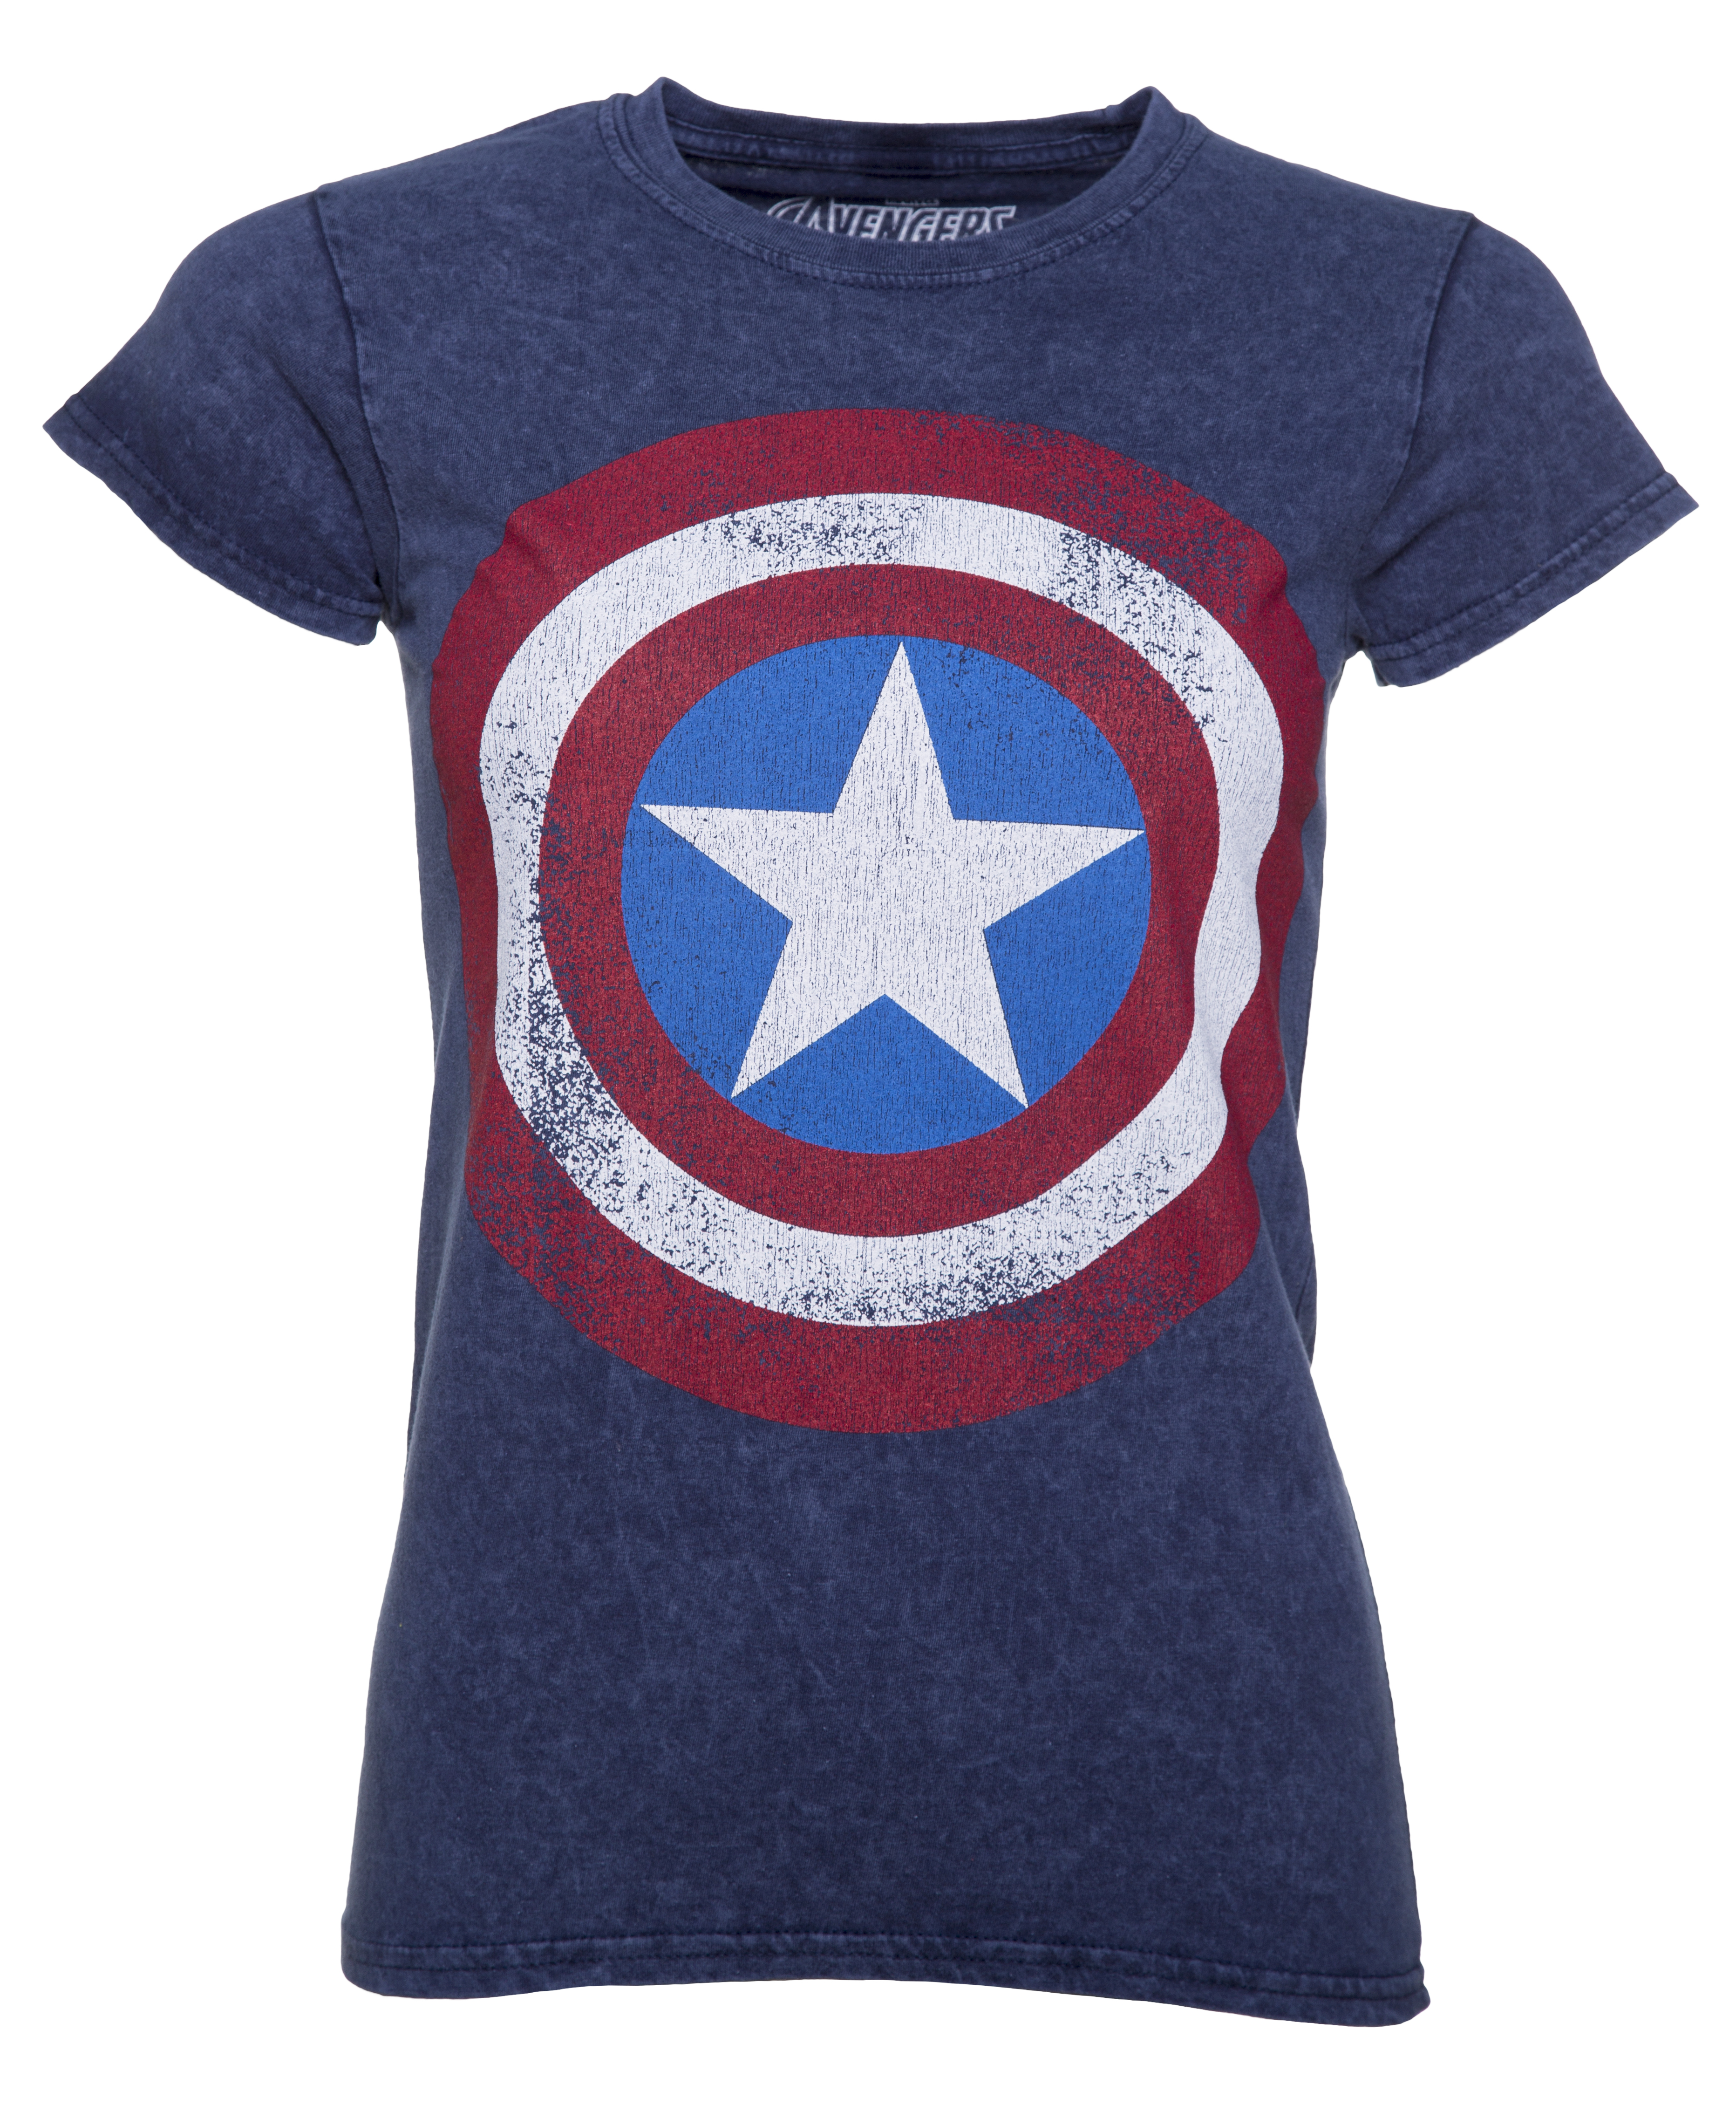 women 39 s blue snow wash marvel comics captain america distressed shield t shirt. Black Bedroom Furniture Sets. Home Design Ideas